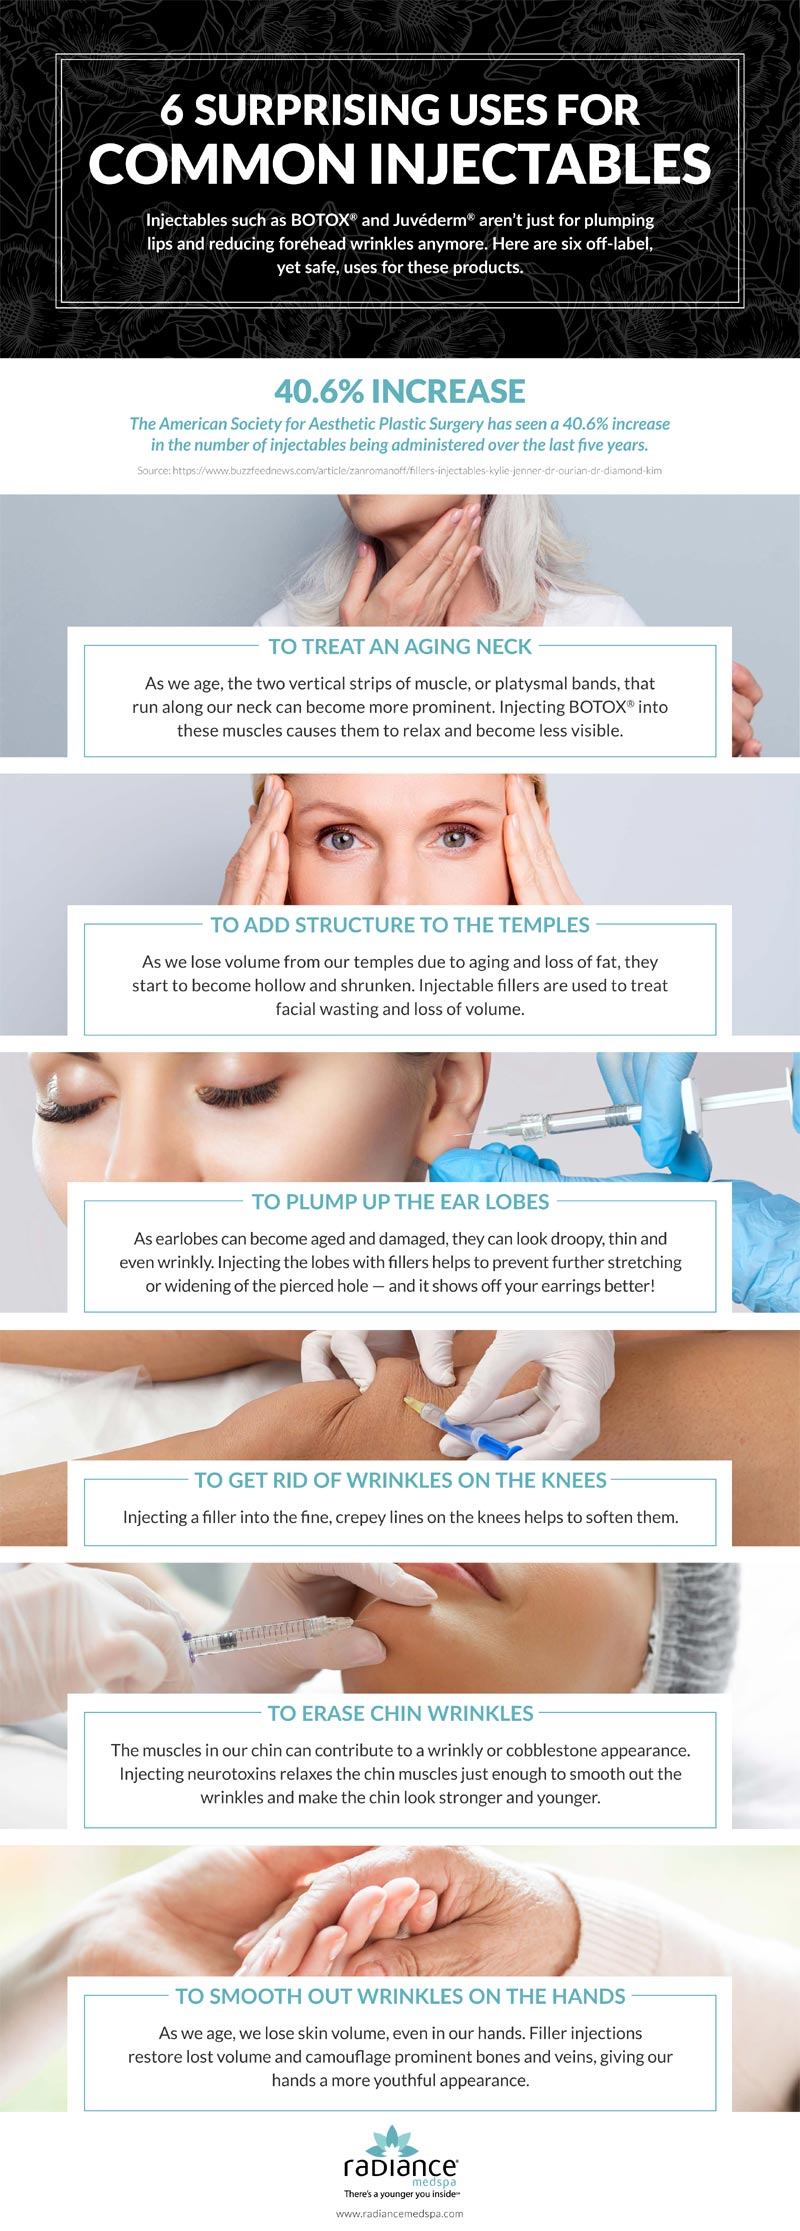 Surprising Uses For Common Injectables